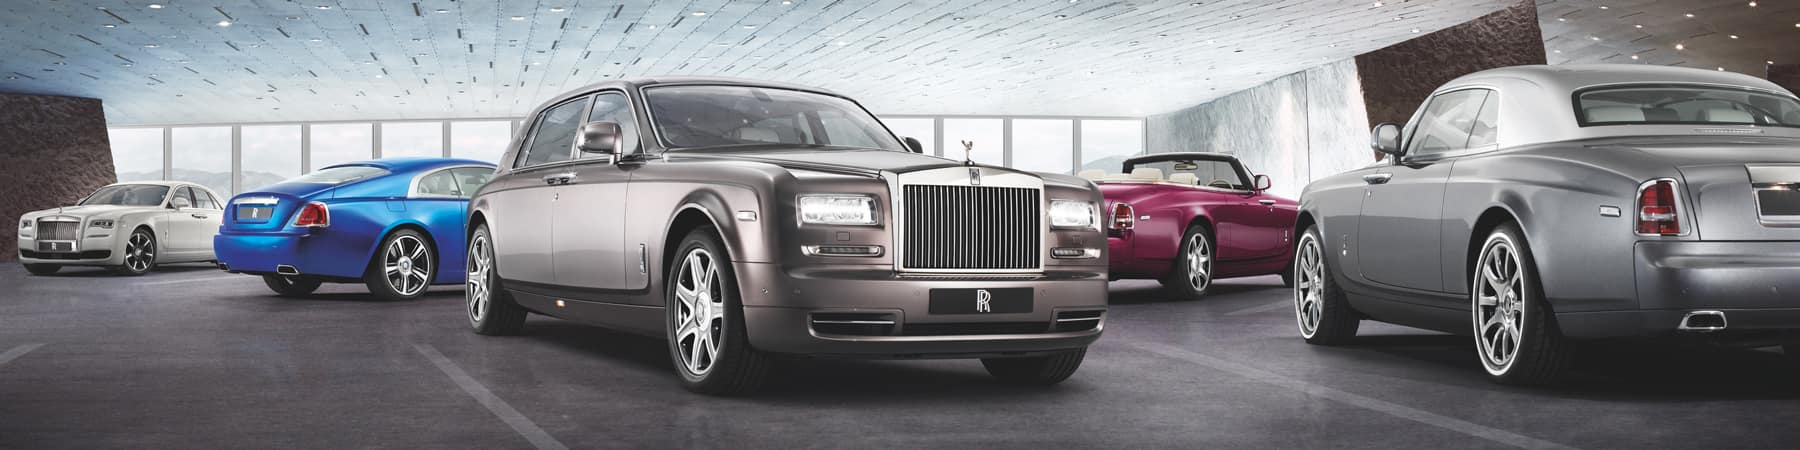 Provenance Certified Pre-Owned Rolls-Royce Motor Cars for sale in Charleston SC